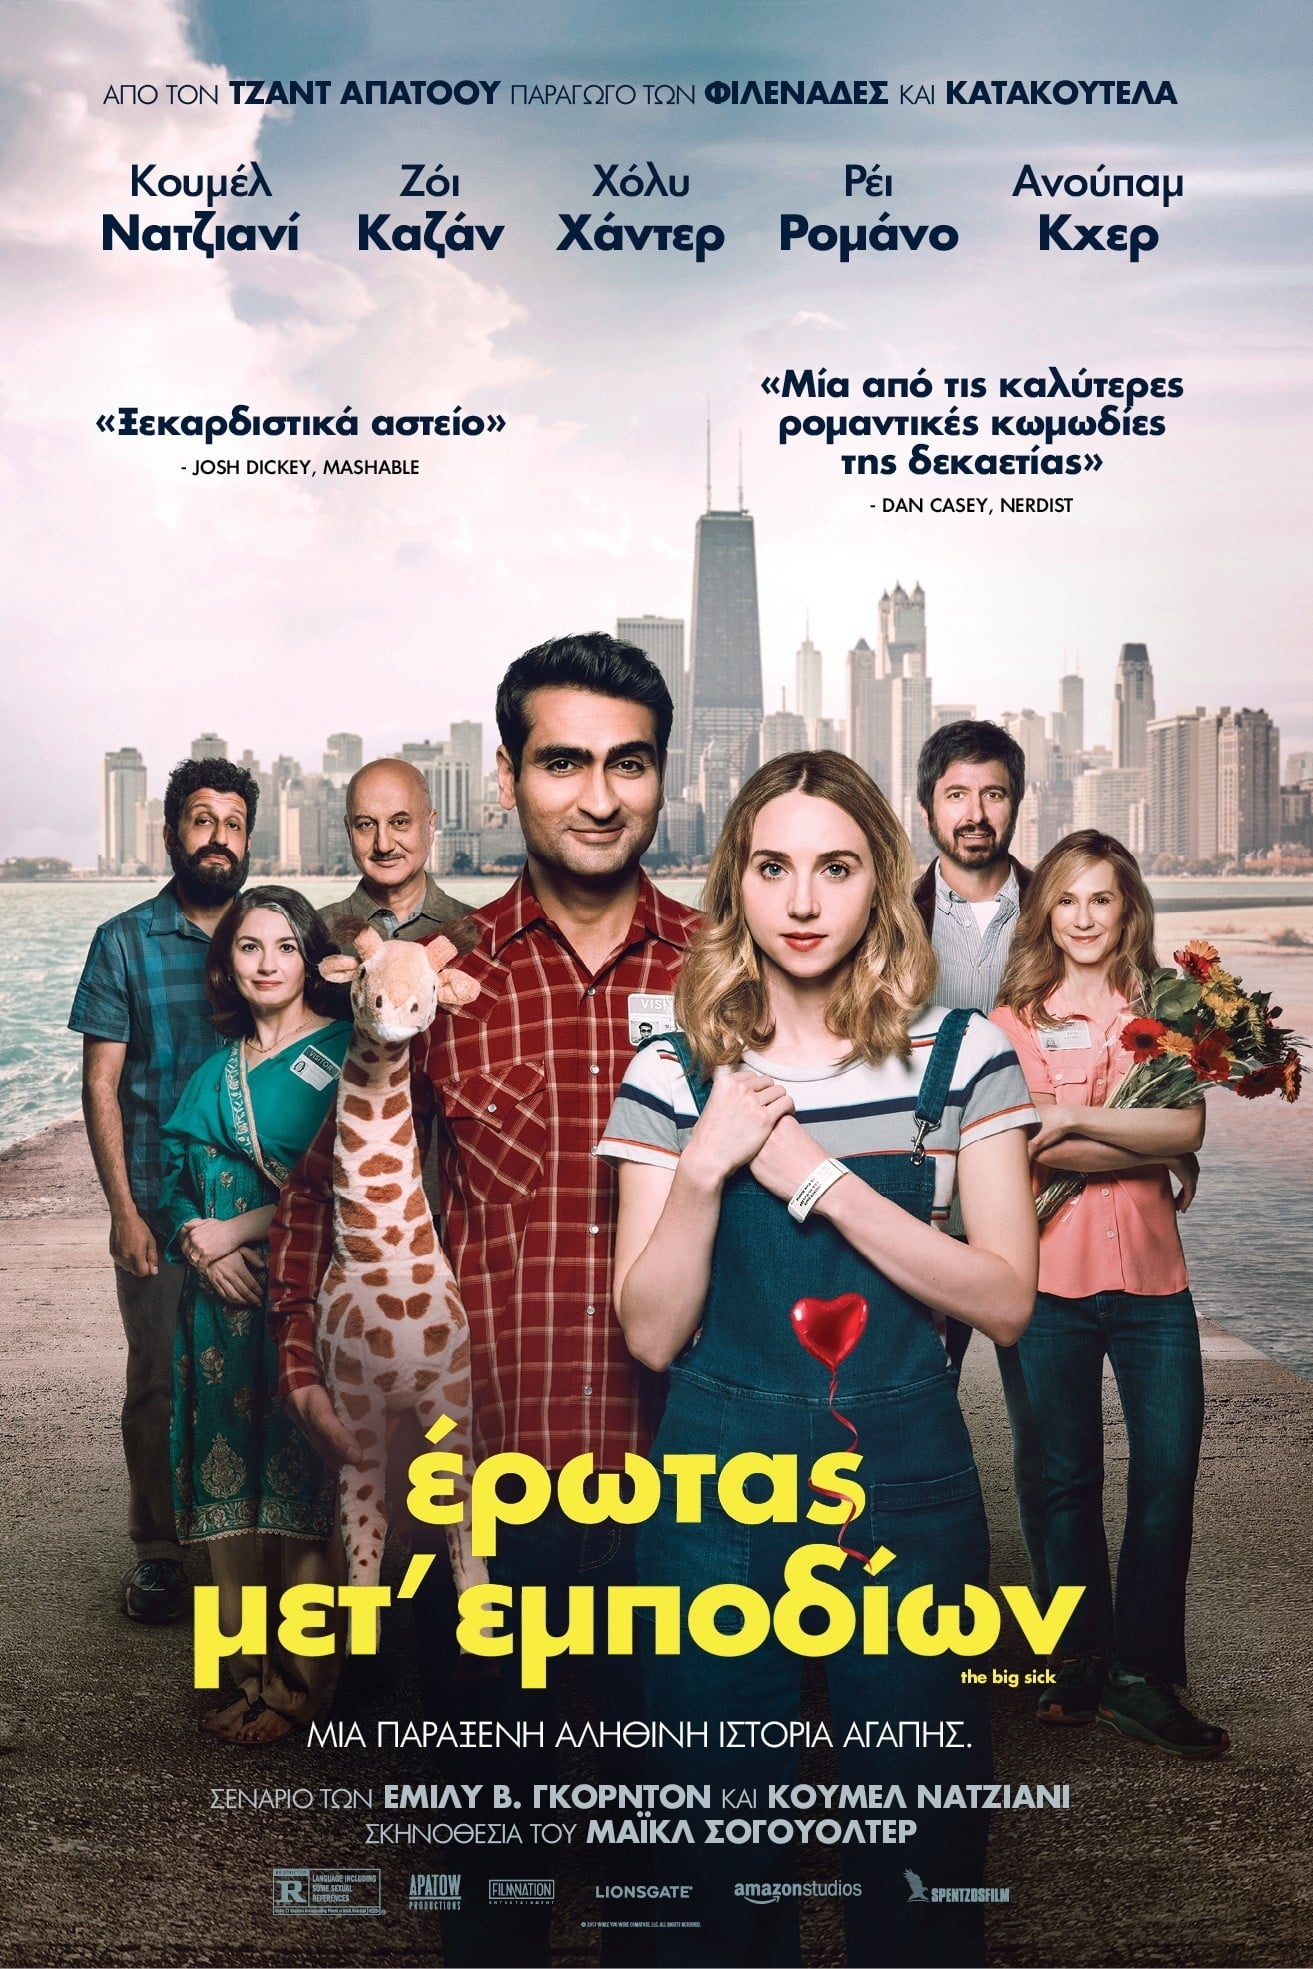 Poster and image movie Film The Big Sick - The Big Sick - The Big Sick -  2017